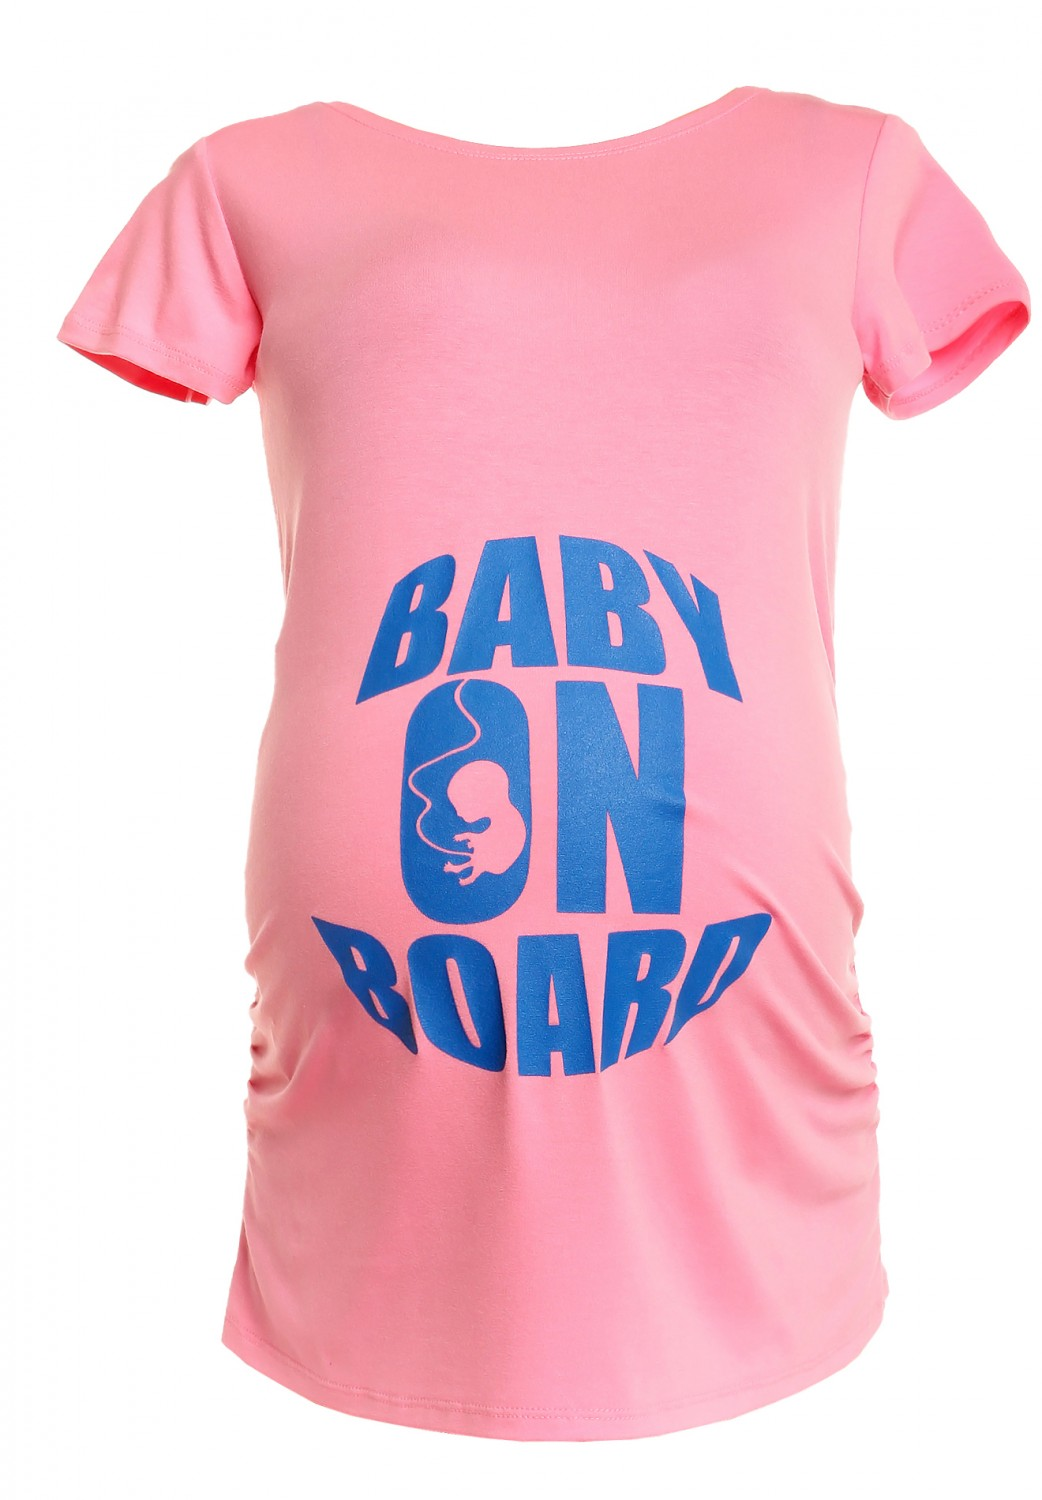 Amazoncom baby on board tshirt